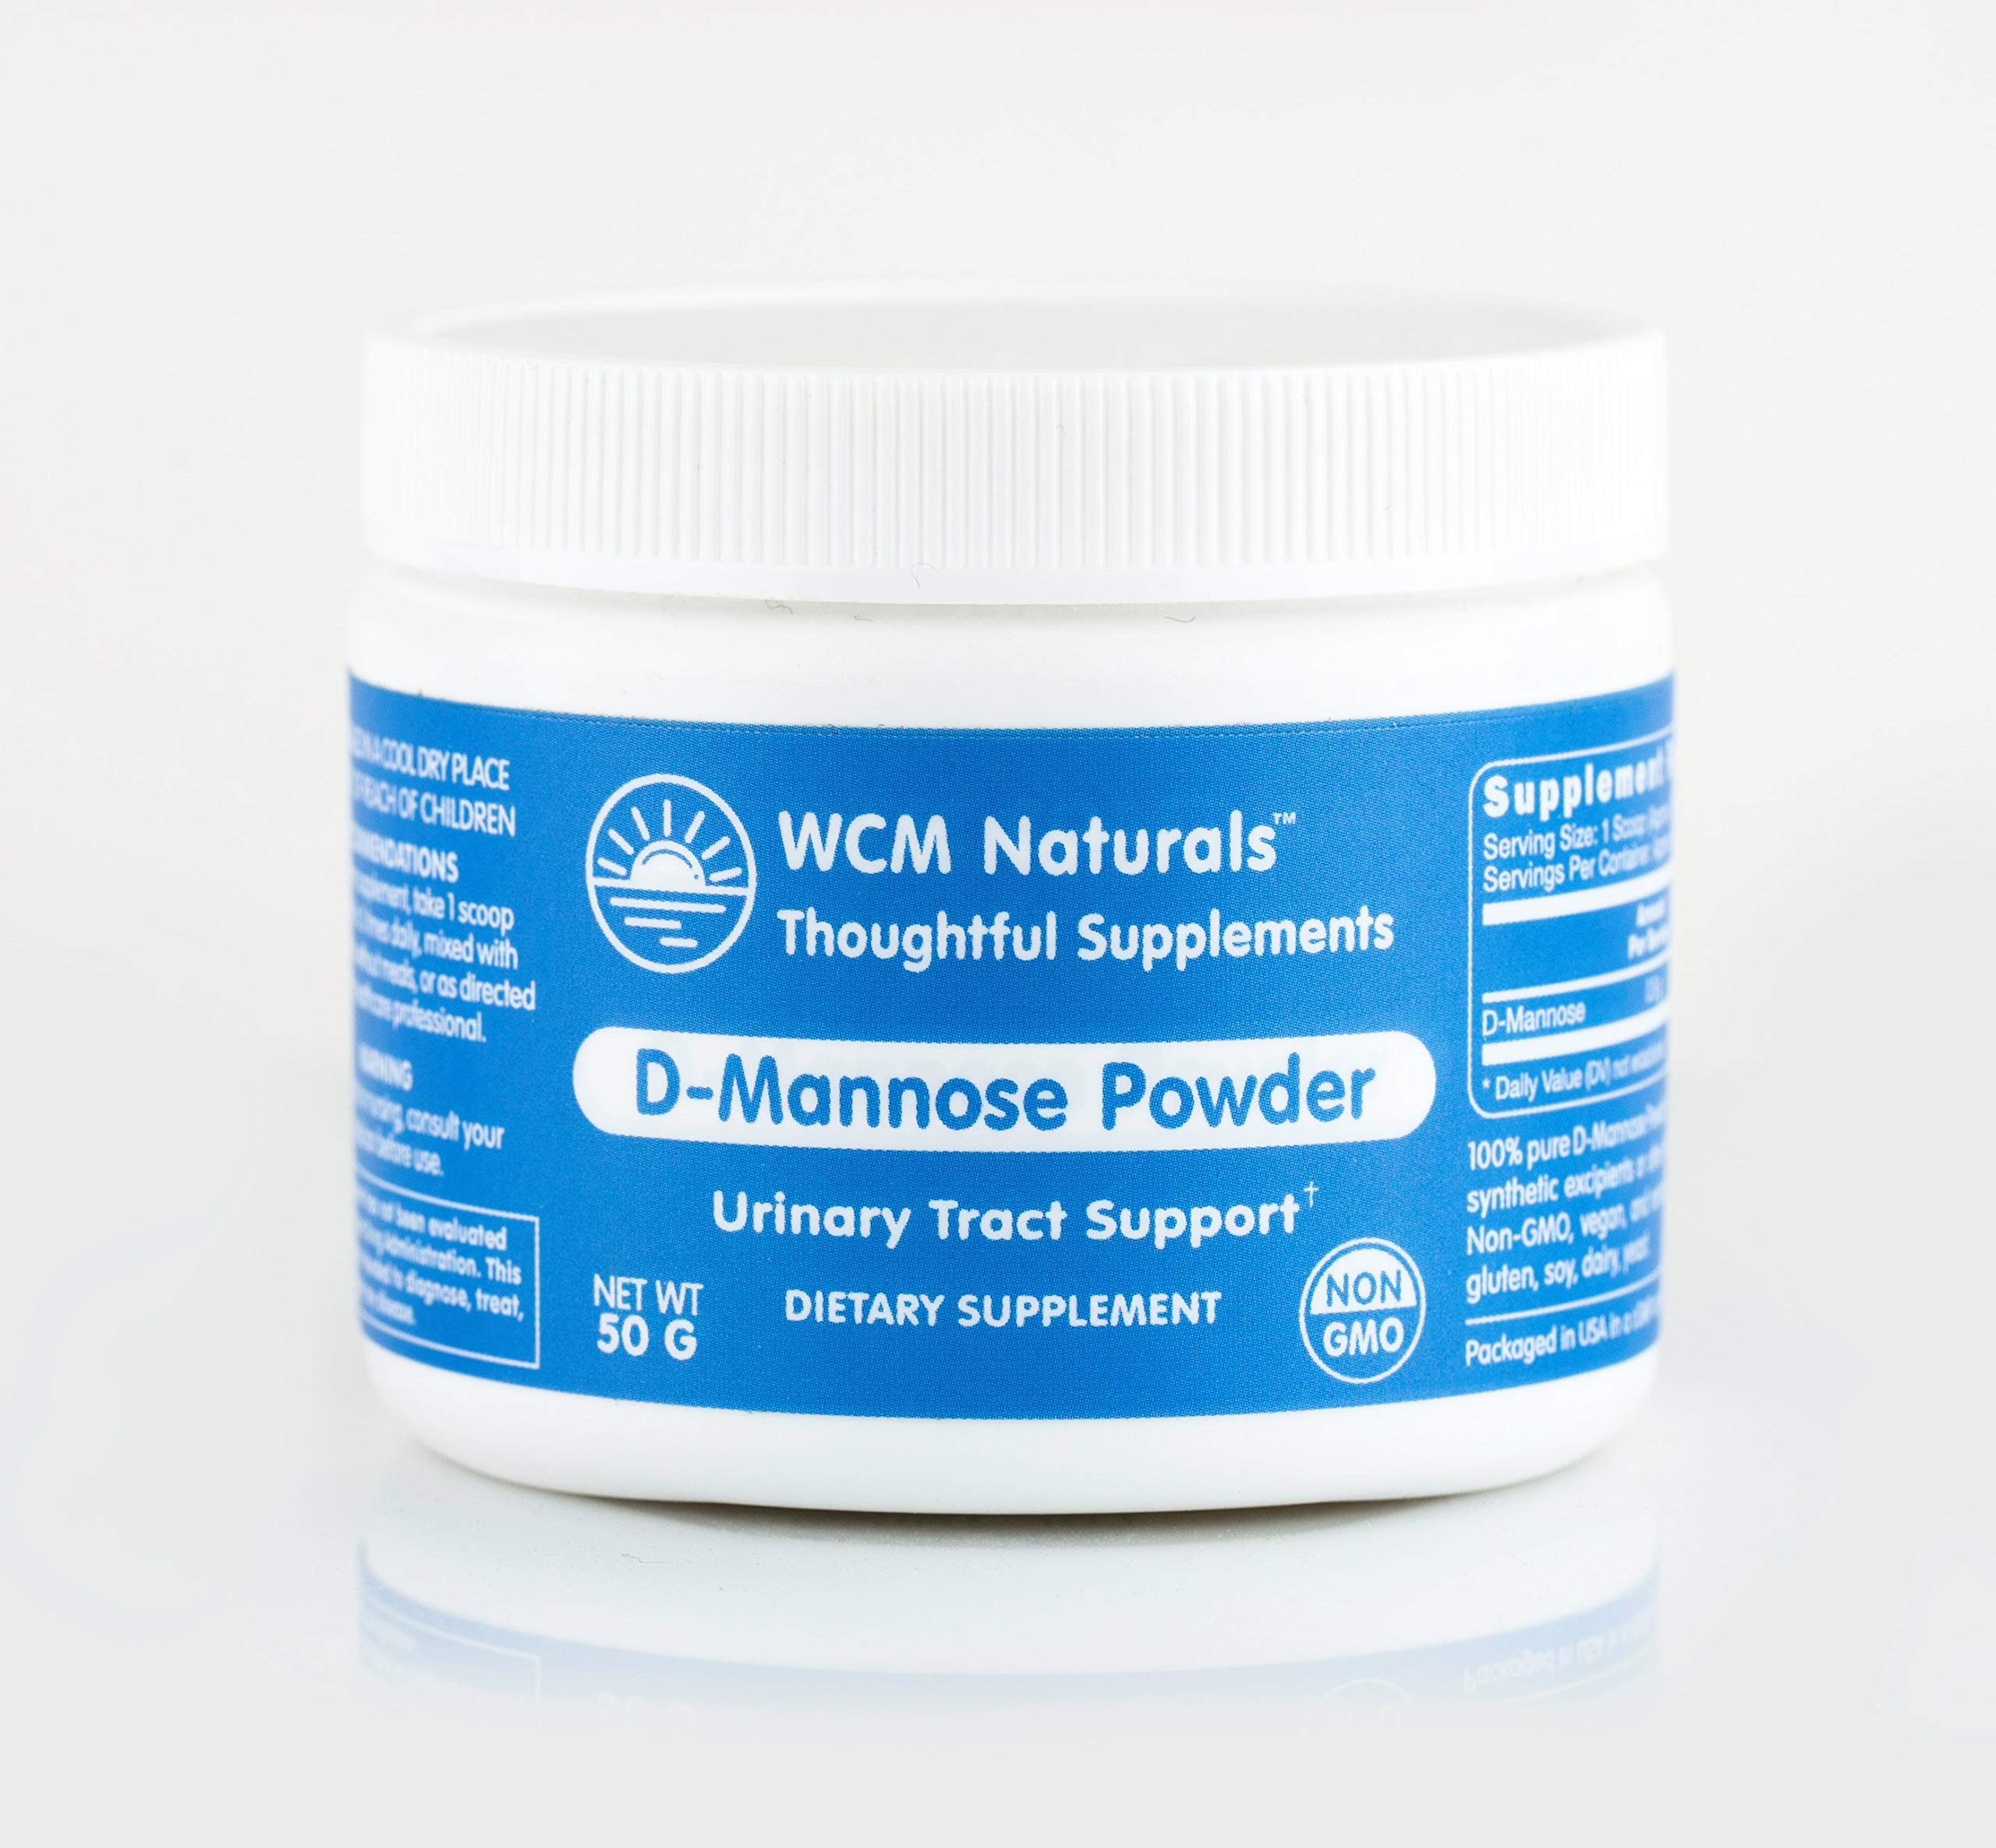 D-Mannose Powder Non-GMO (100 g) by West Coast Mint